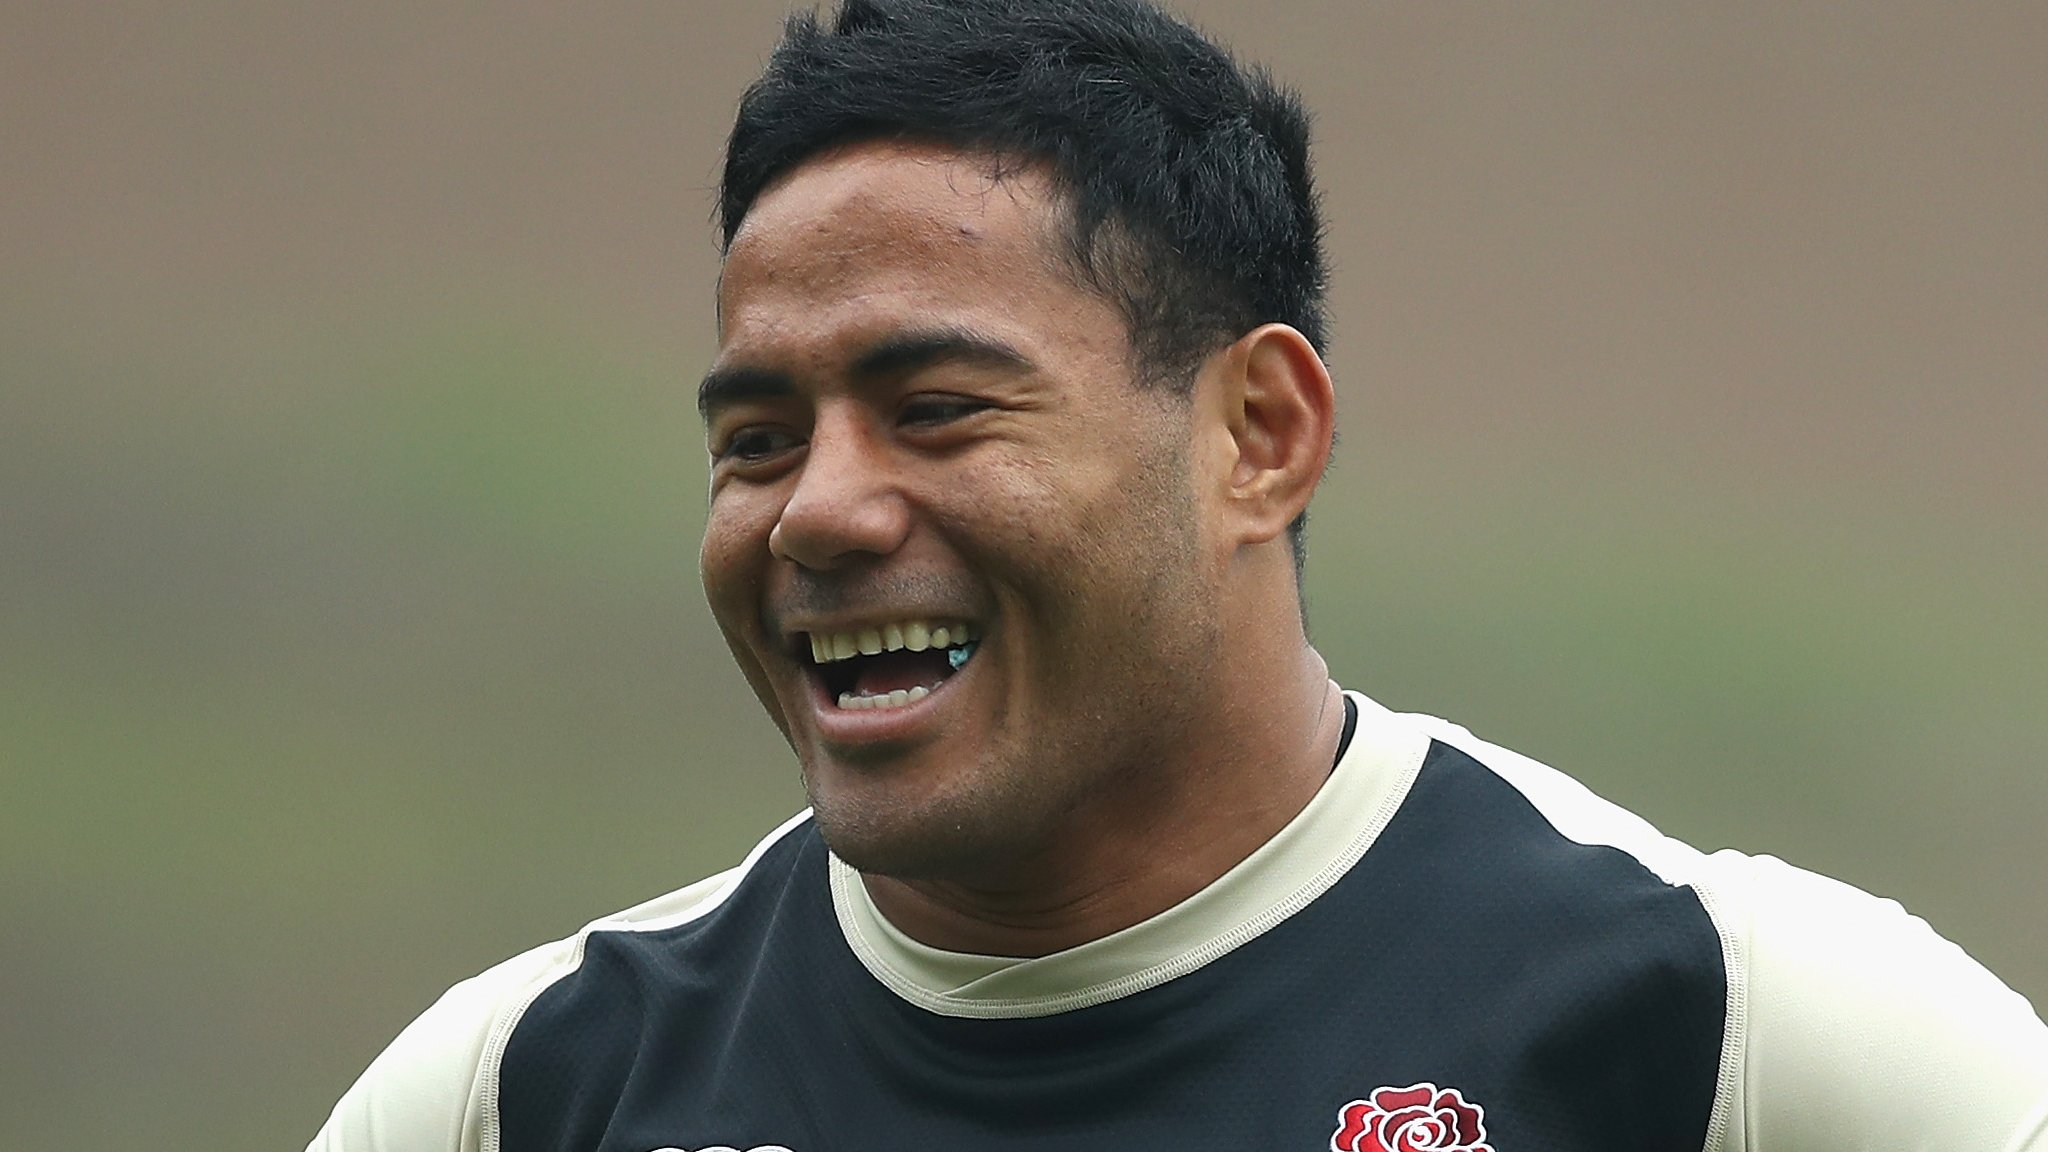 'He is progressing nicely' - Tuilagi poised for England return against Australia